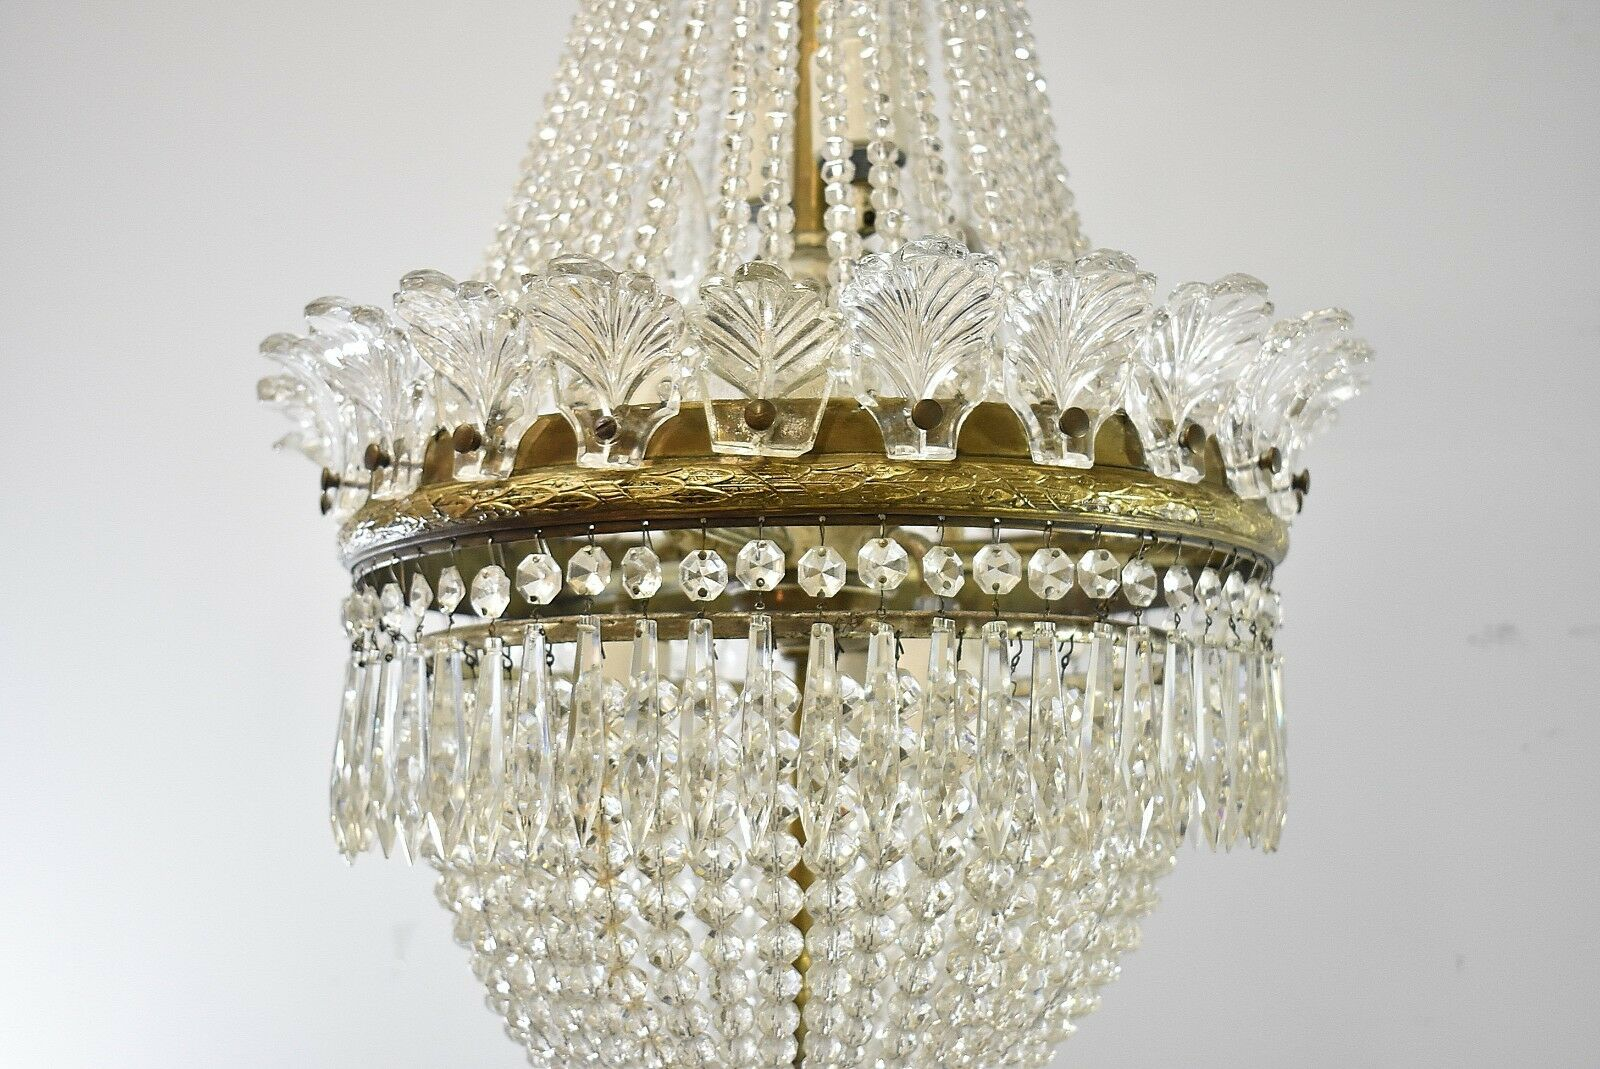 Antique french style crystal chandelier light fixture with bronze antique french style crystal chandelier light fixture with aloadofball